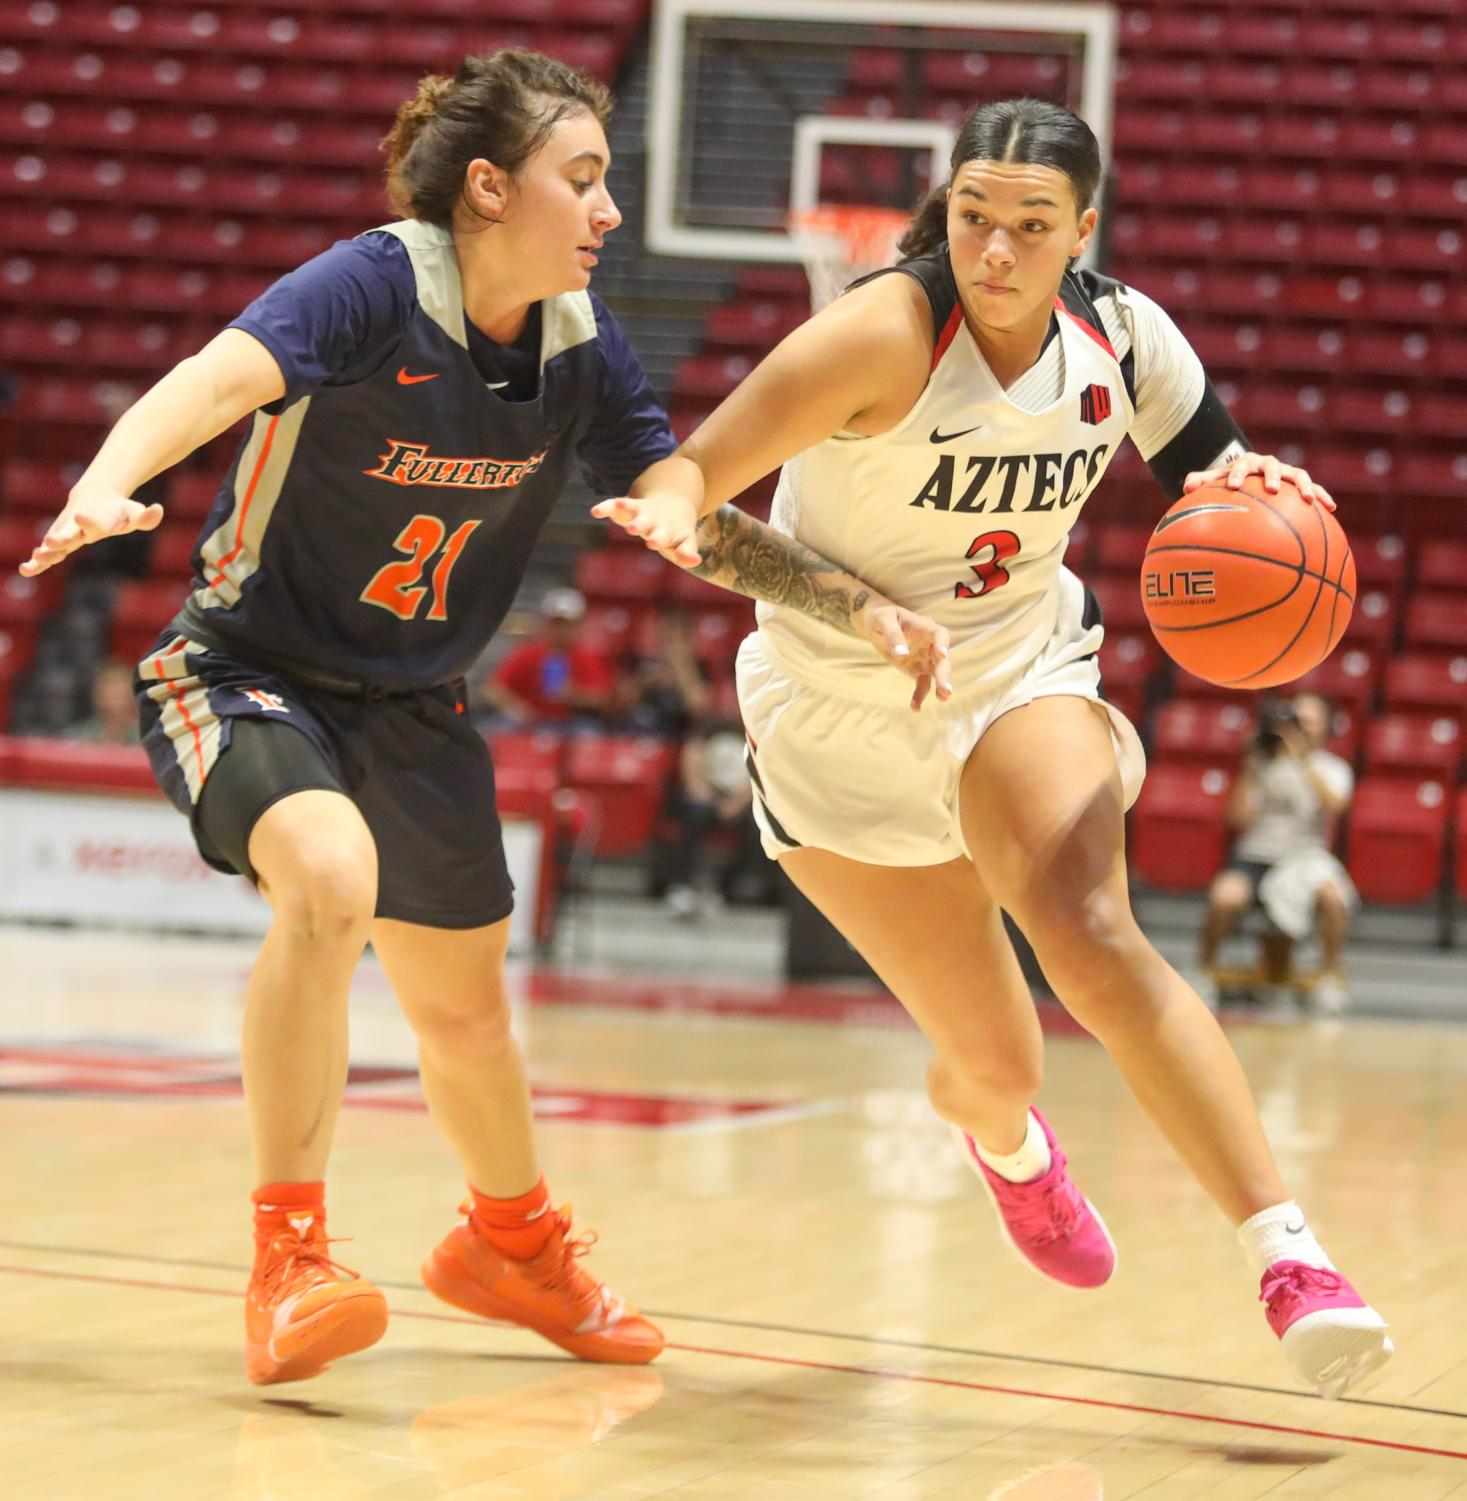 Sophomore forward Mallory Adams drives left during the Aztecs' 55-45 win over the Titans on Nov. 17 at Viejas Arena.